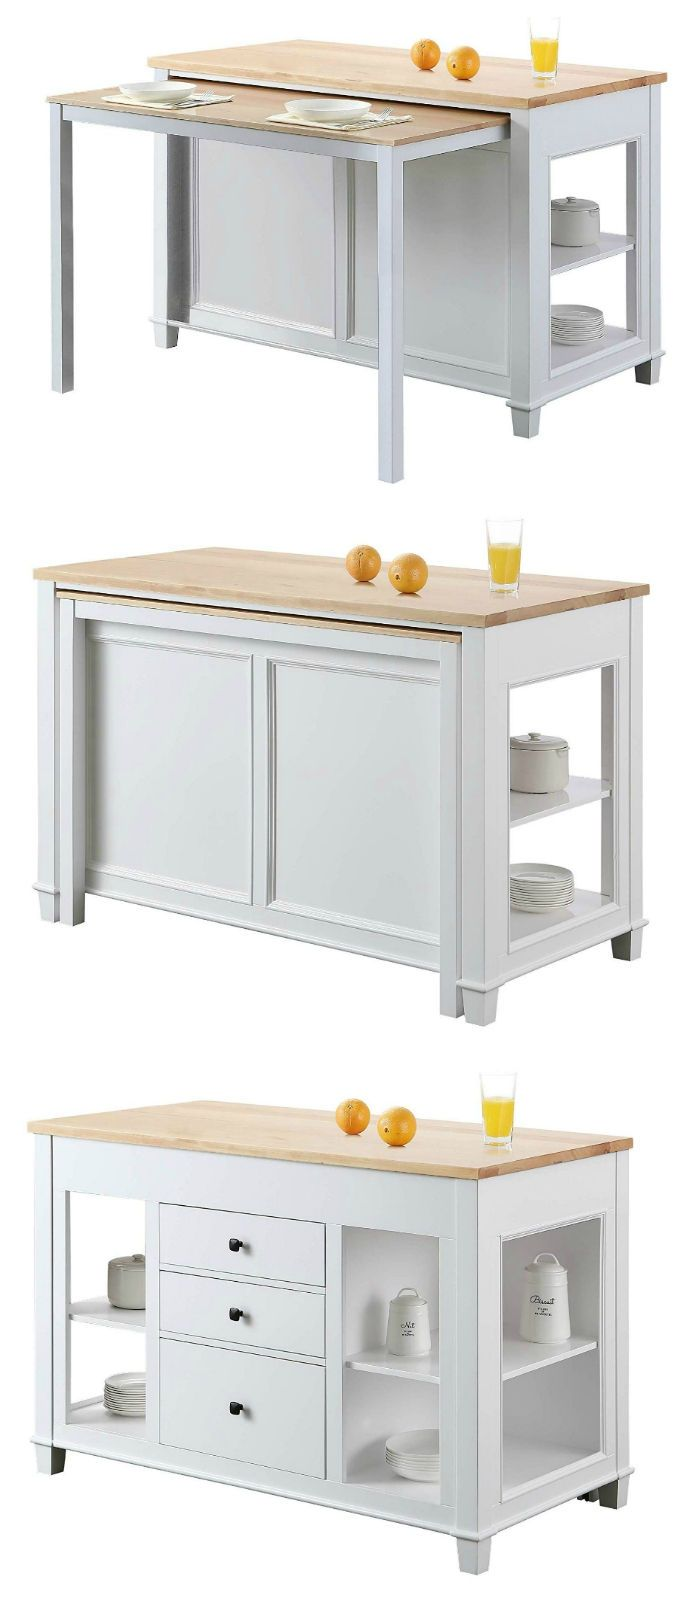 Photo of These 12 dining tables are excellent solutions for small spaces – Living in a shoebox